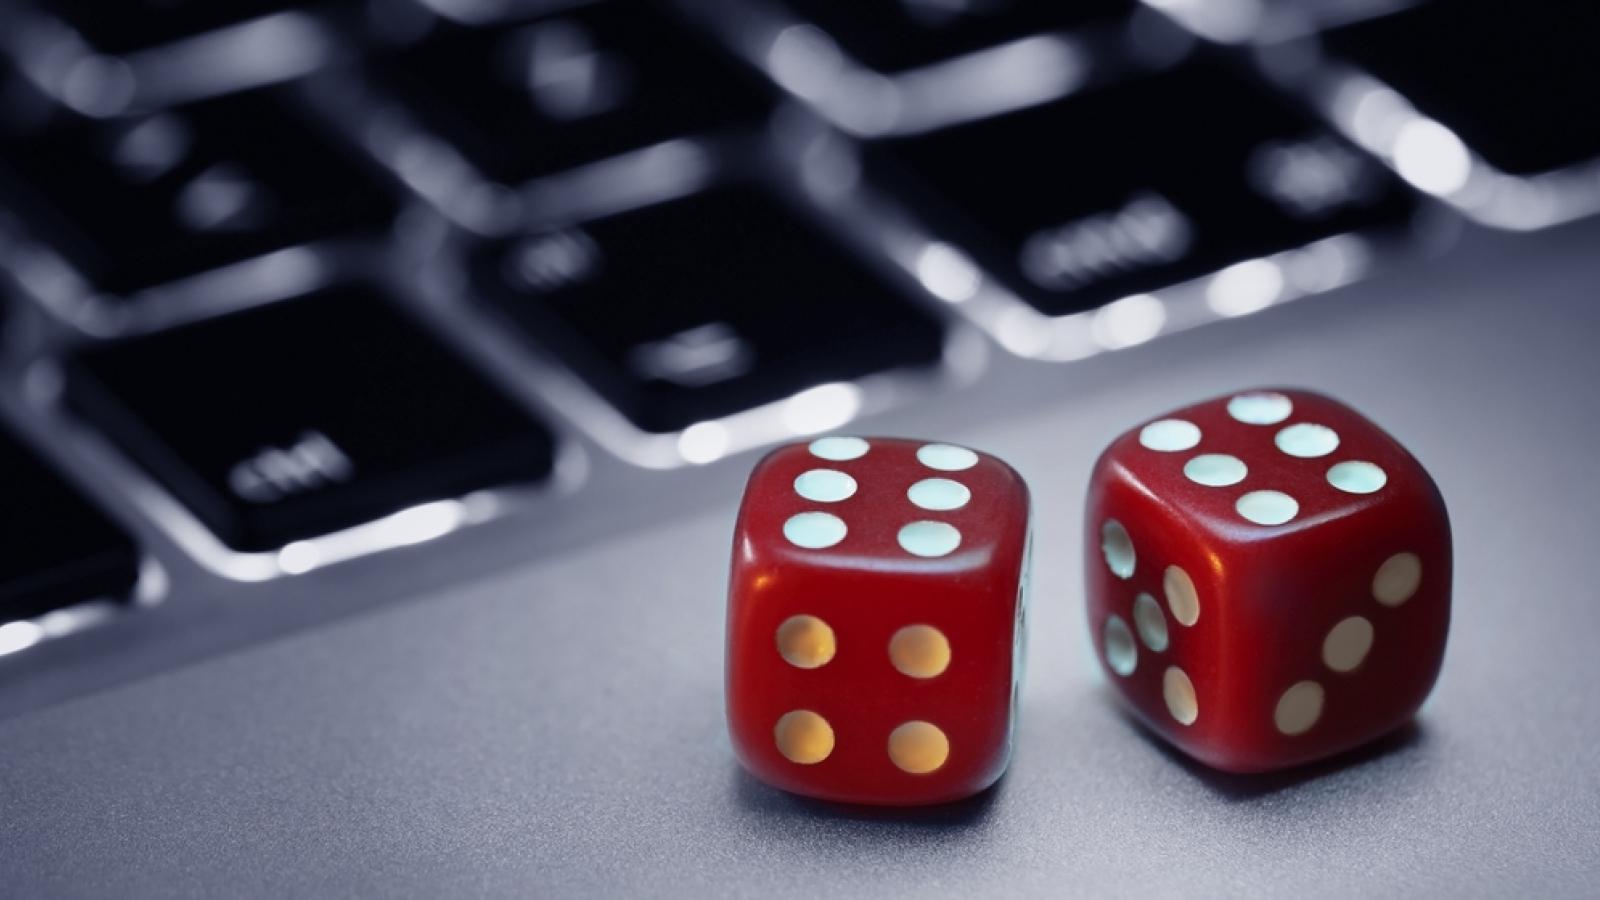 The new Gaming Act one year on: Has the bar been raised?